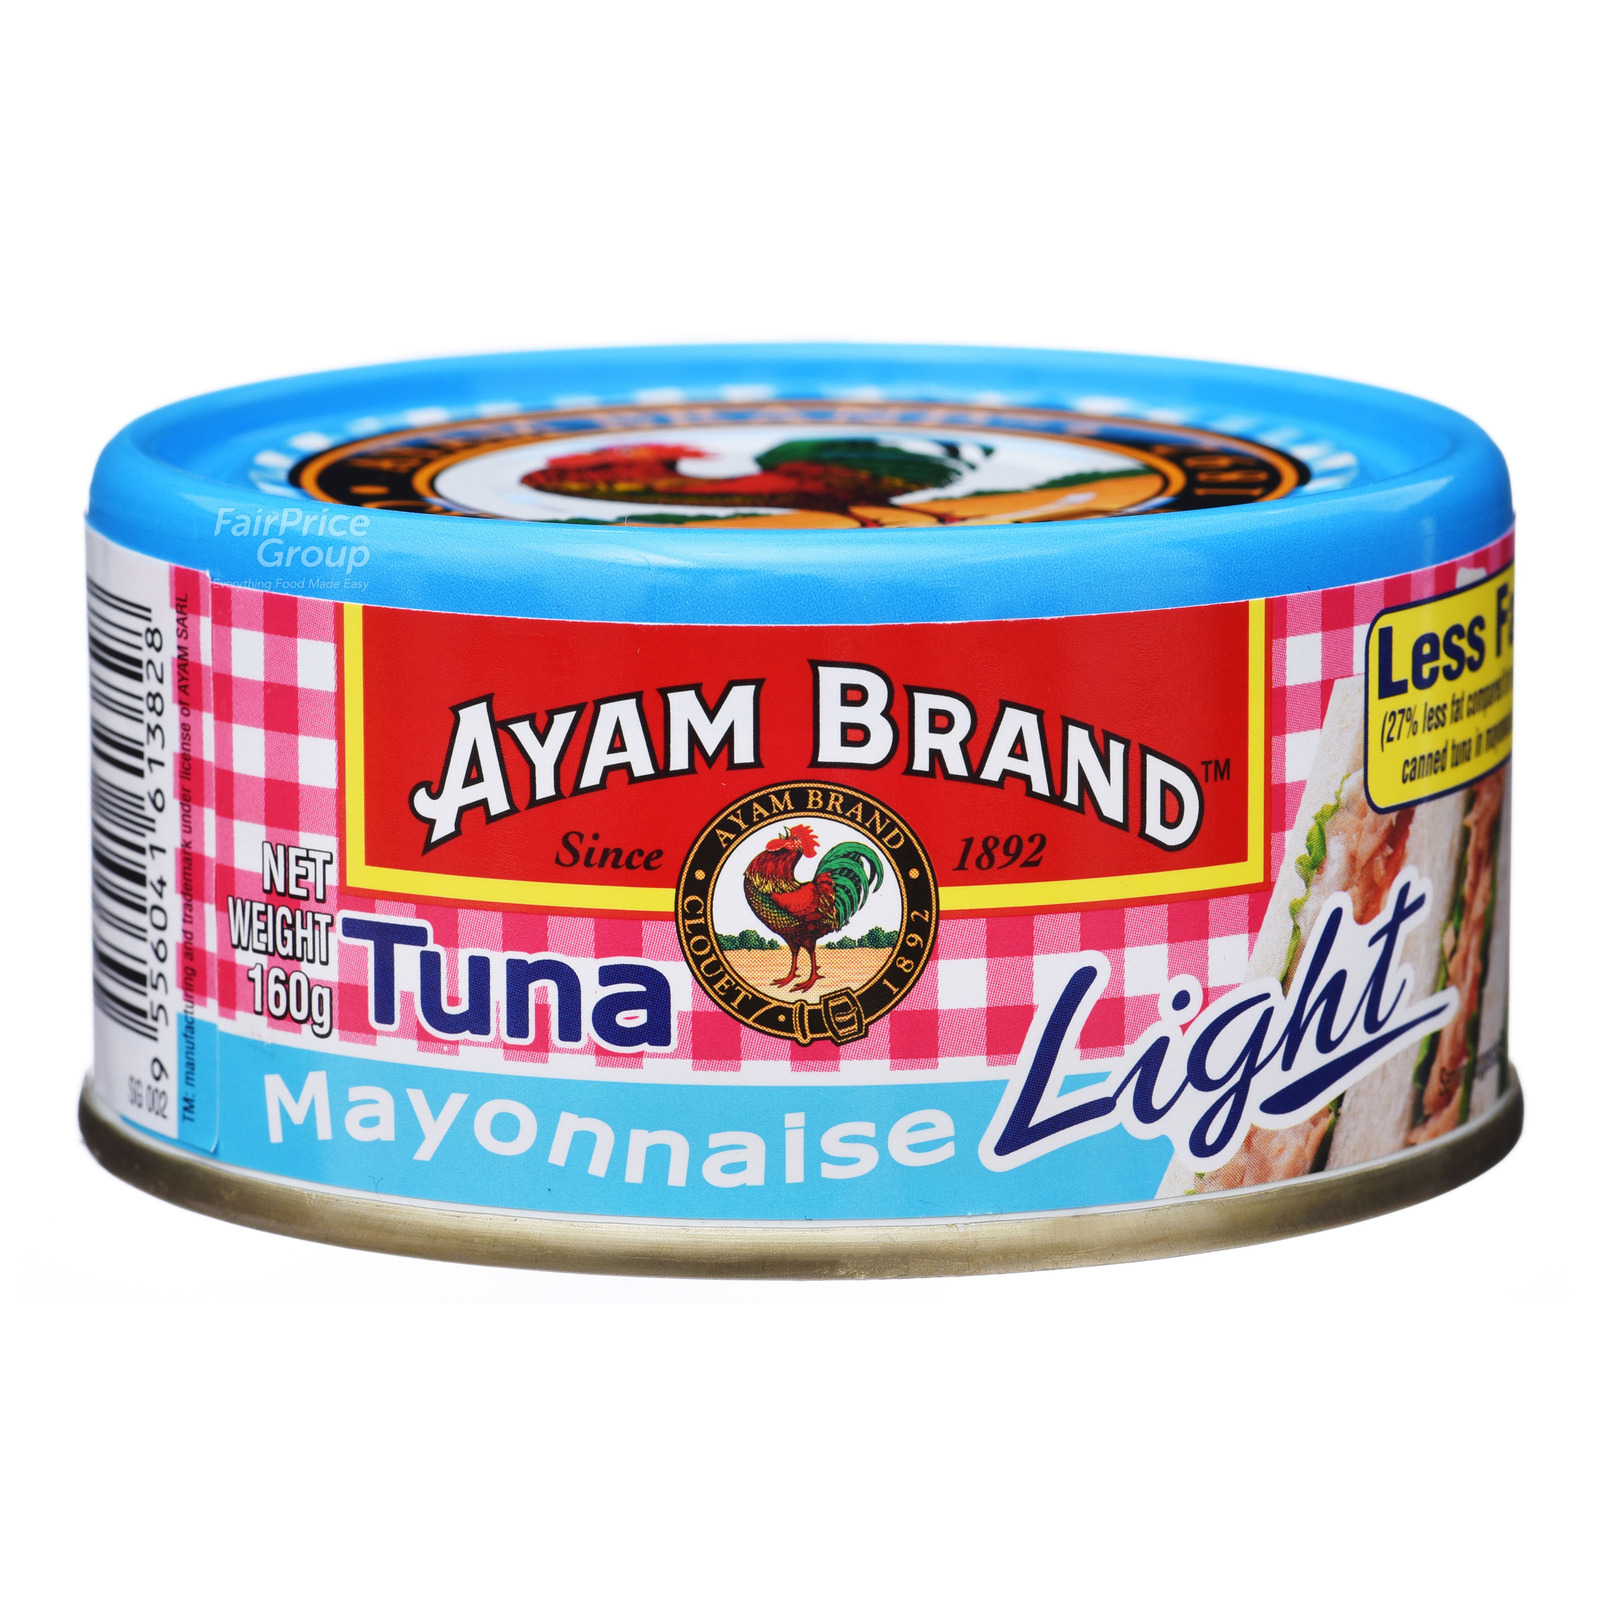 Ayam Brand Tuna Mayonnaise - Light